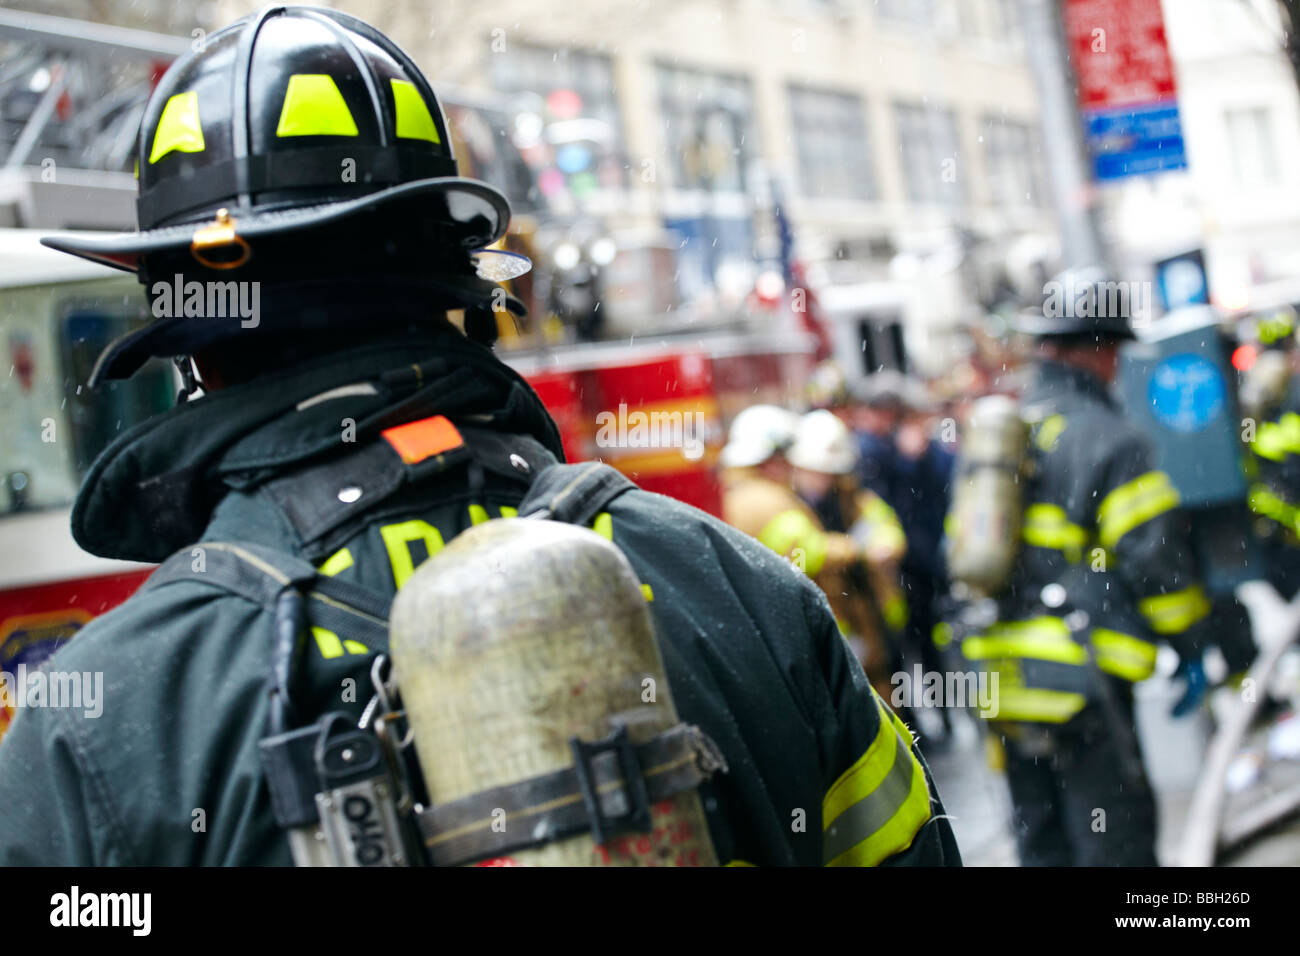 Donora Pa Smog 1011 likewise 2013 08 01 archive also 164381455120160582 in addition Fire Department Visit moreover I0000OUOFn. on firemen oxygen tanks